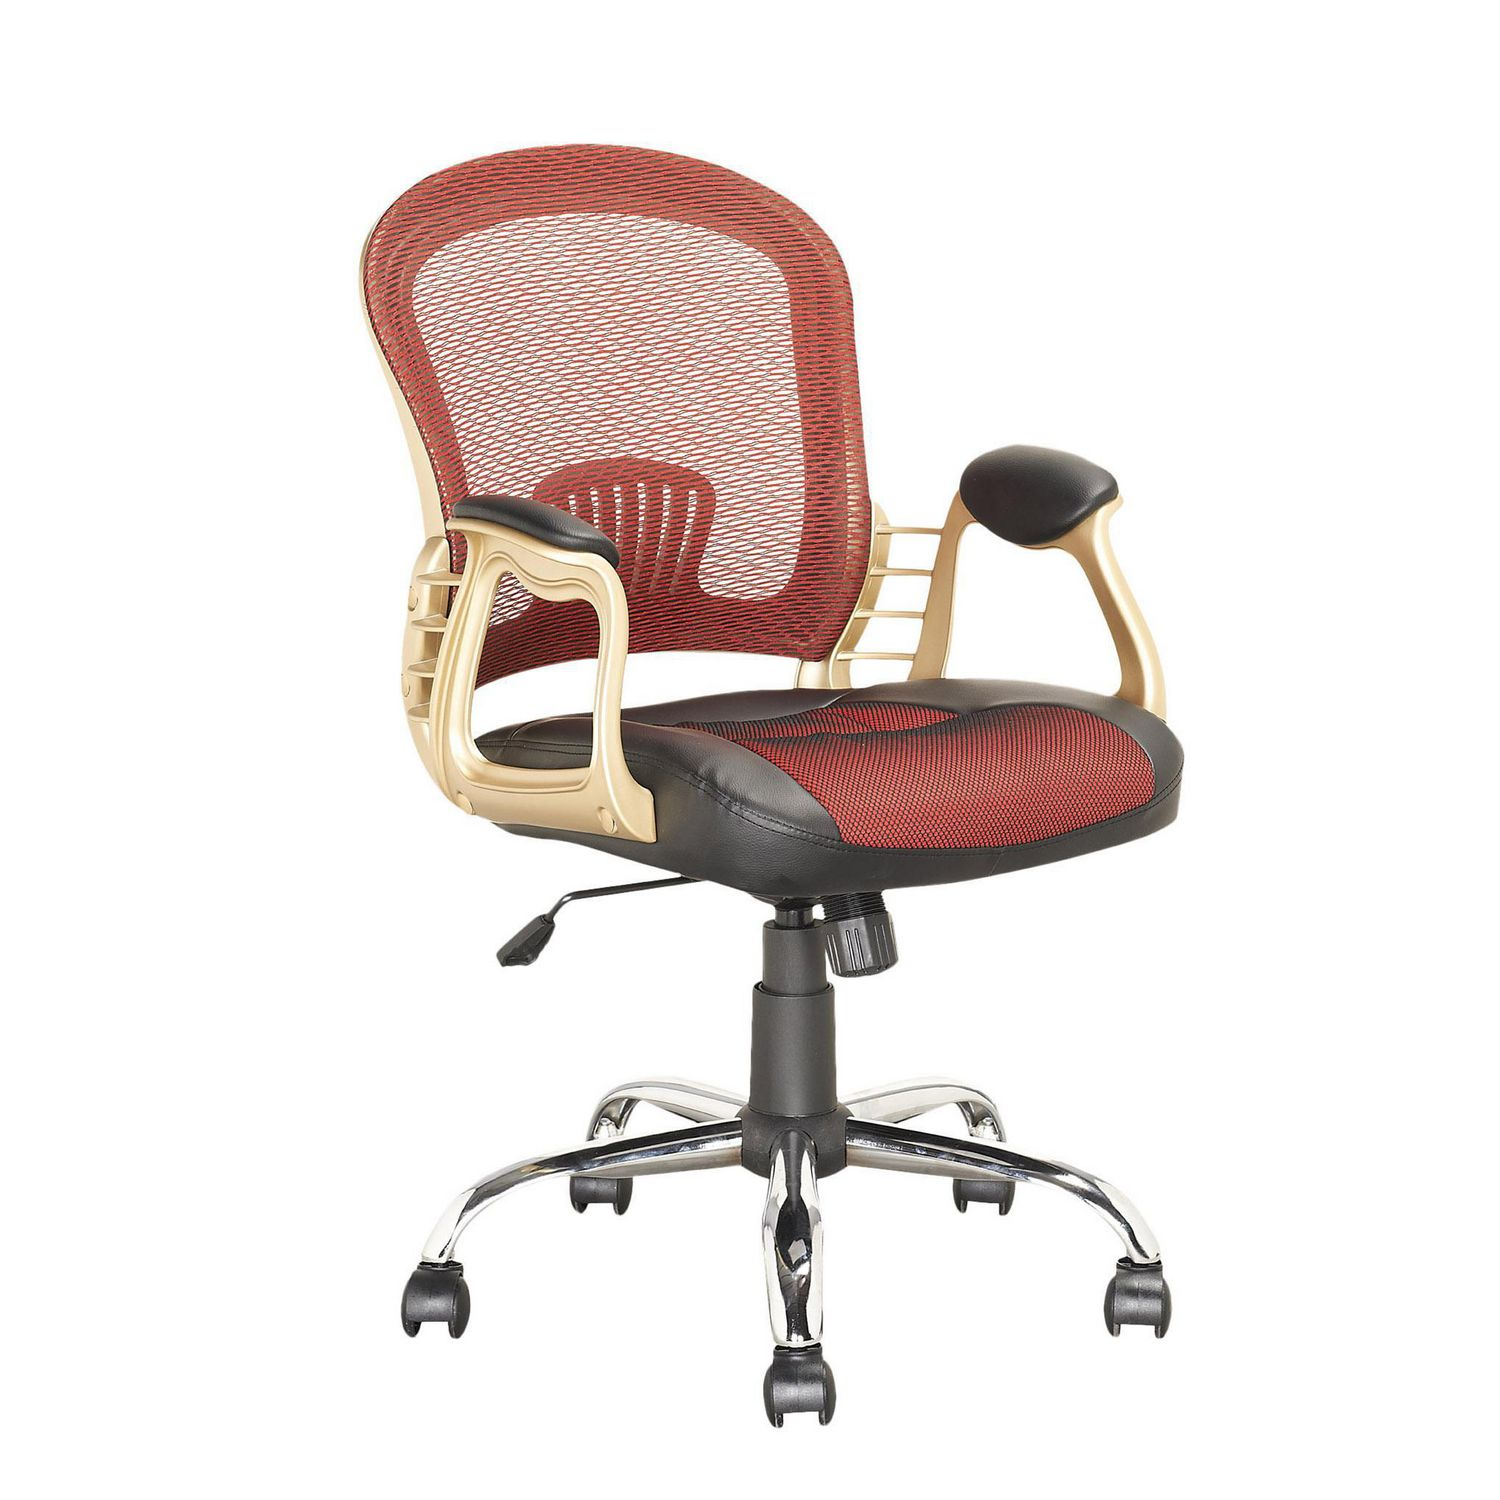 CorLiving LOF 258 O Executive fice Chair in Black Leatherette and